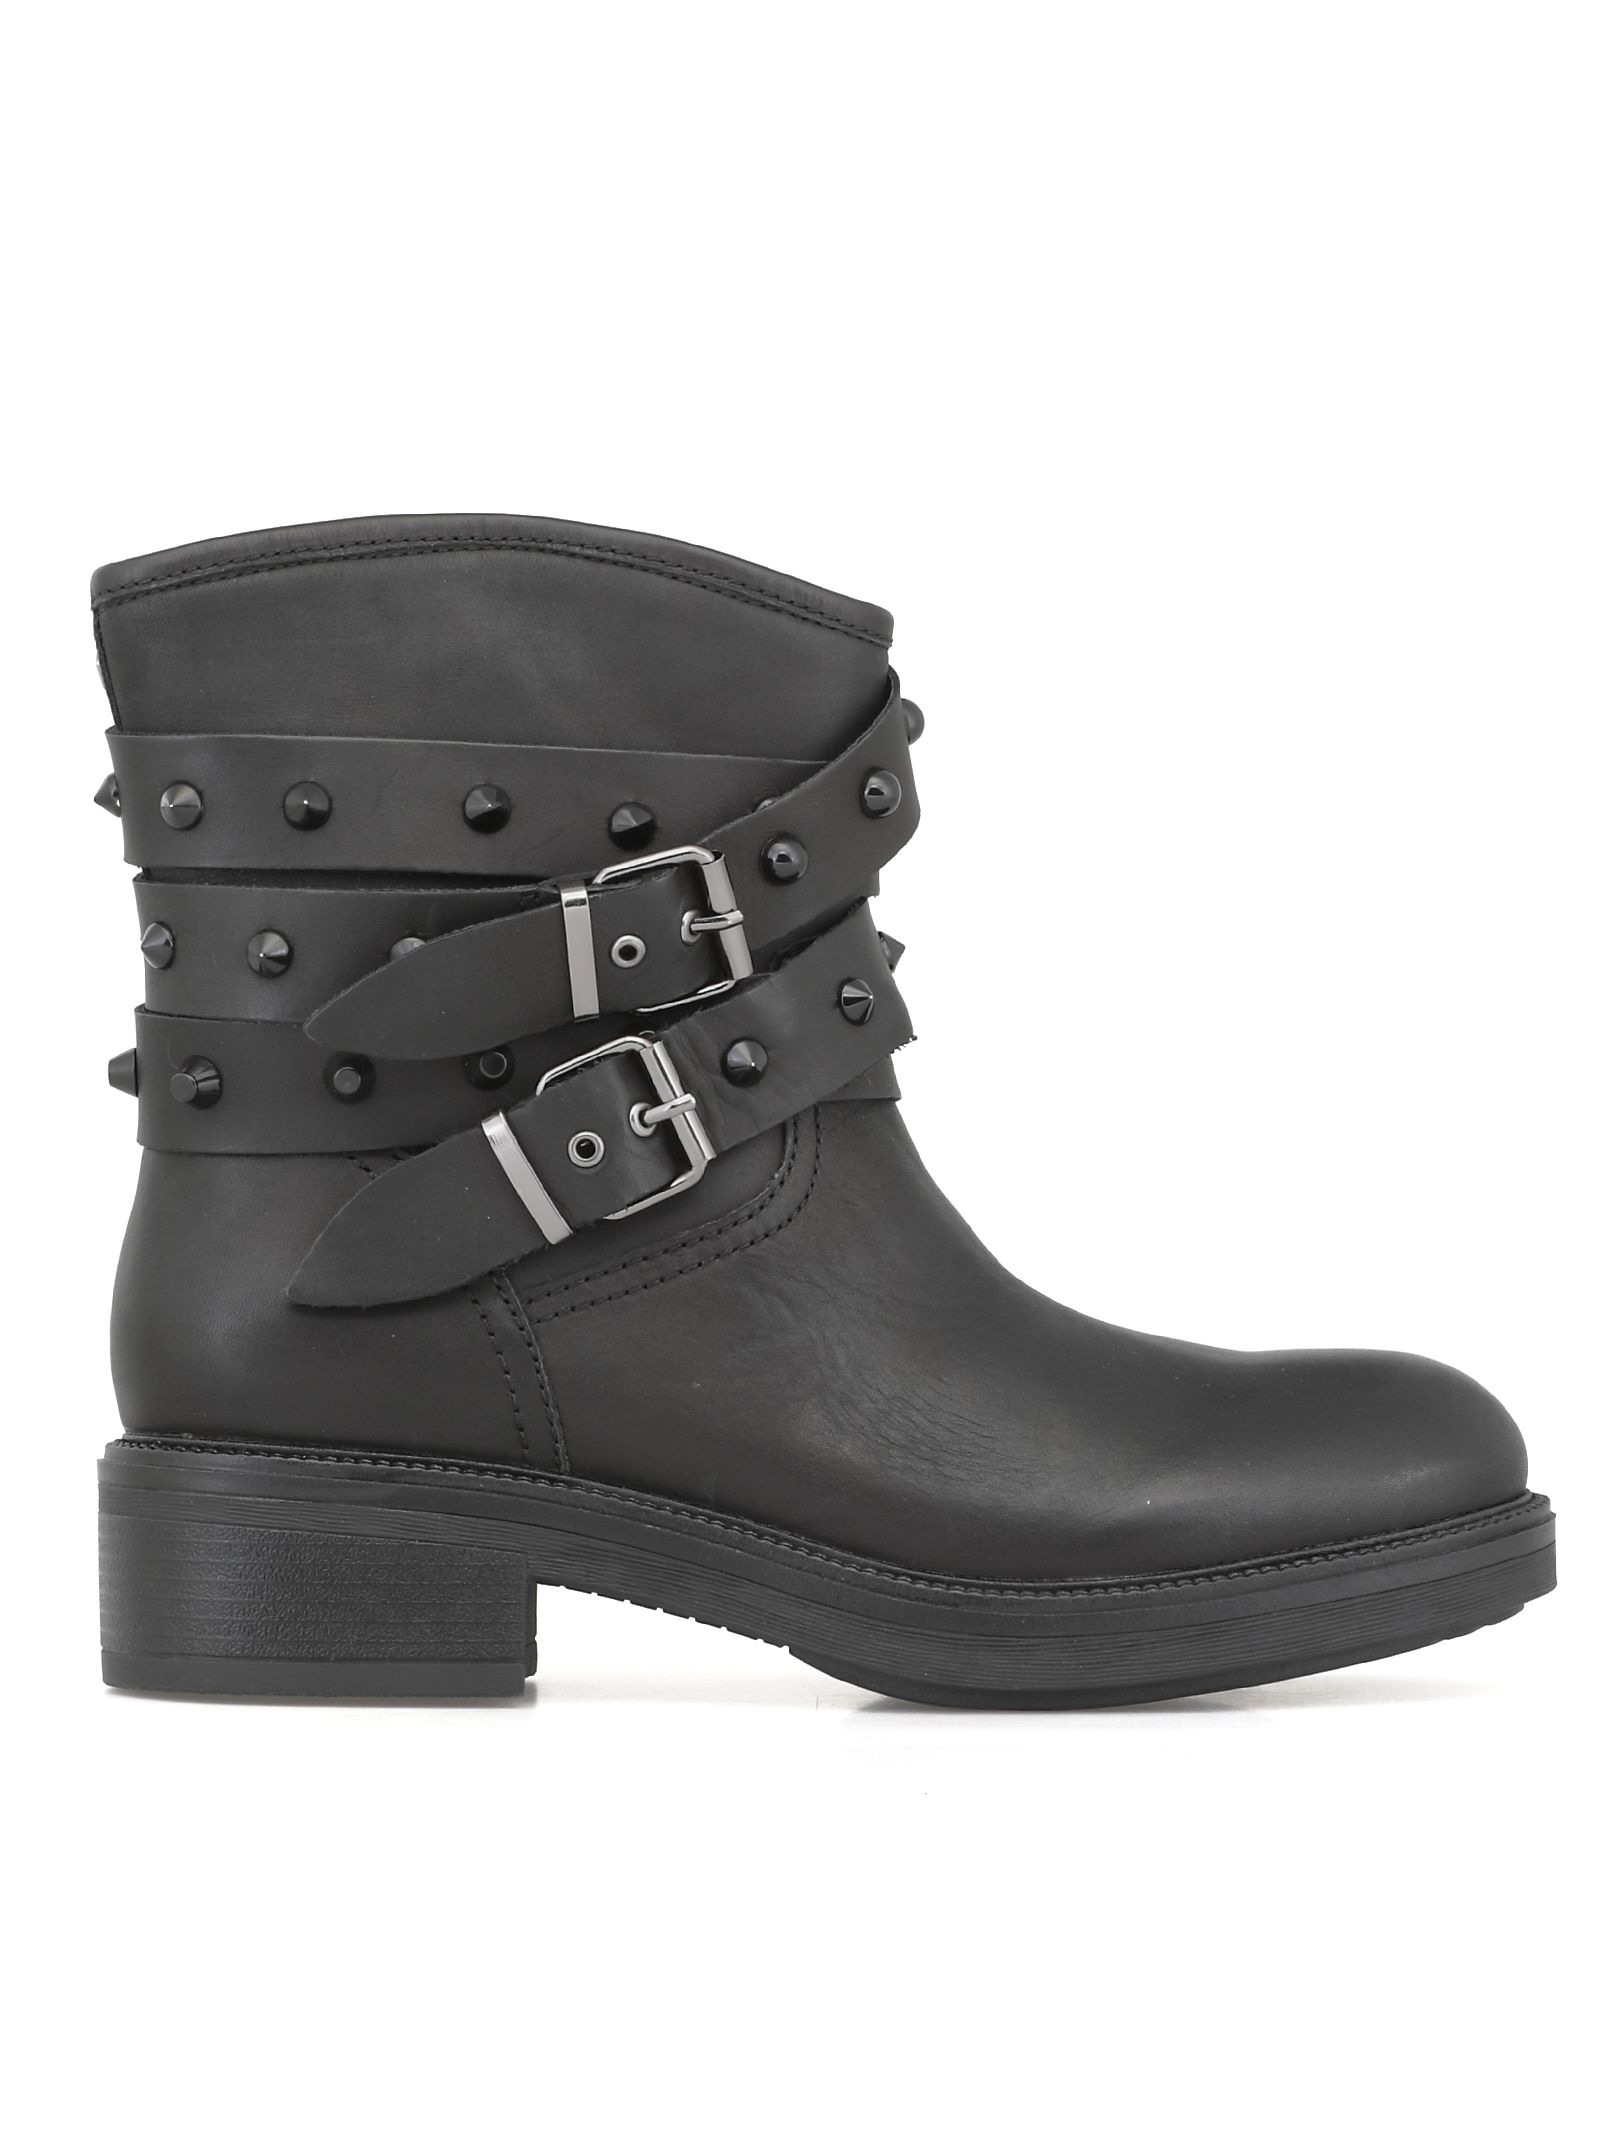 CULT Who Mid 2511 Boot in Black